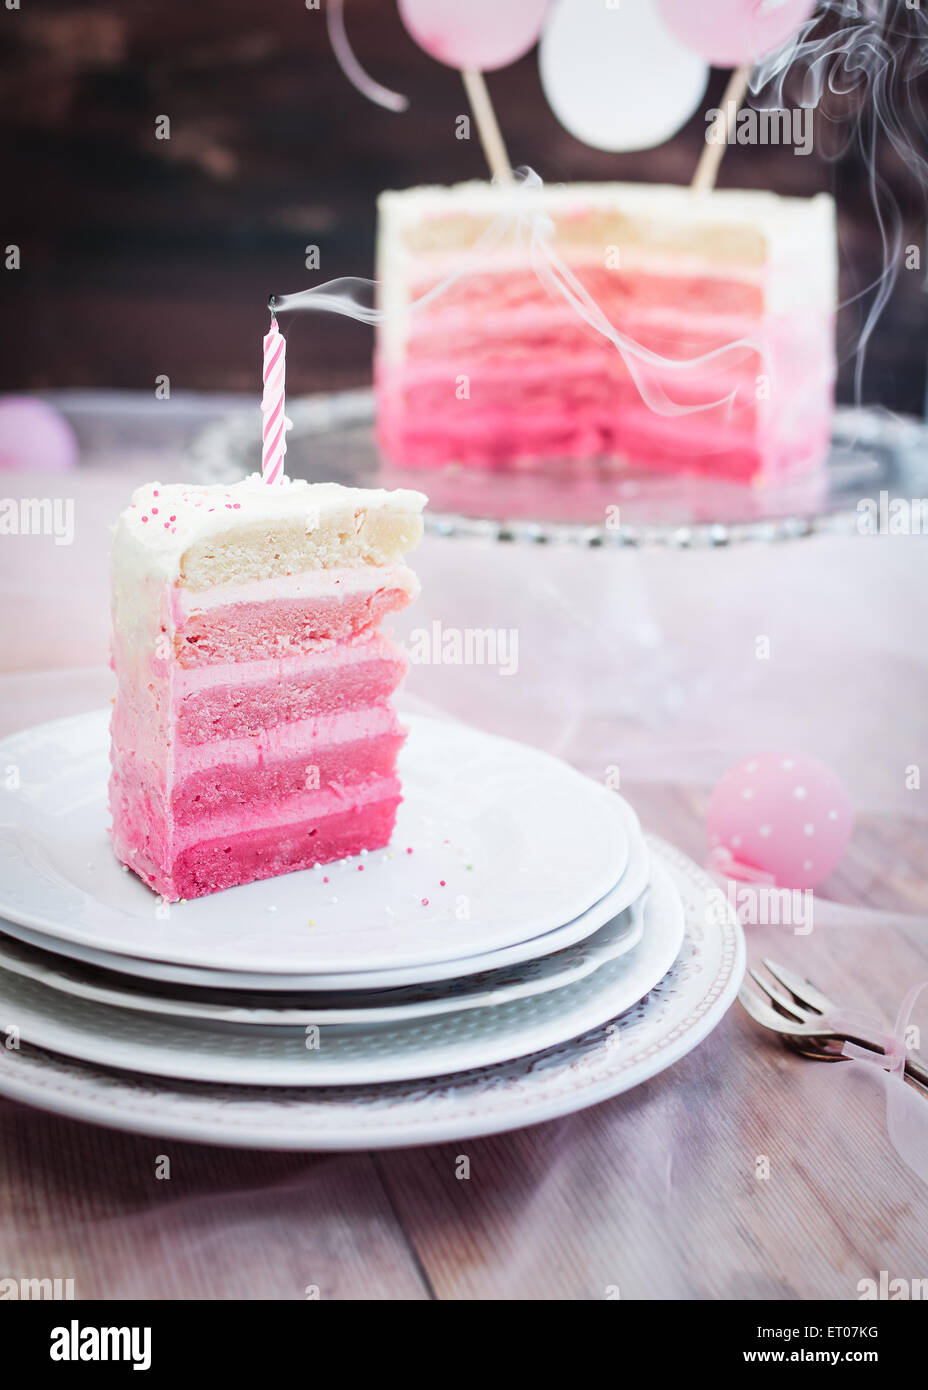 Pink and white piece of birthday cake. Selective focus. - Stock Image